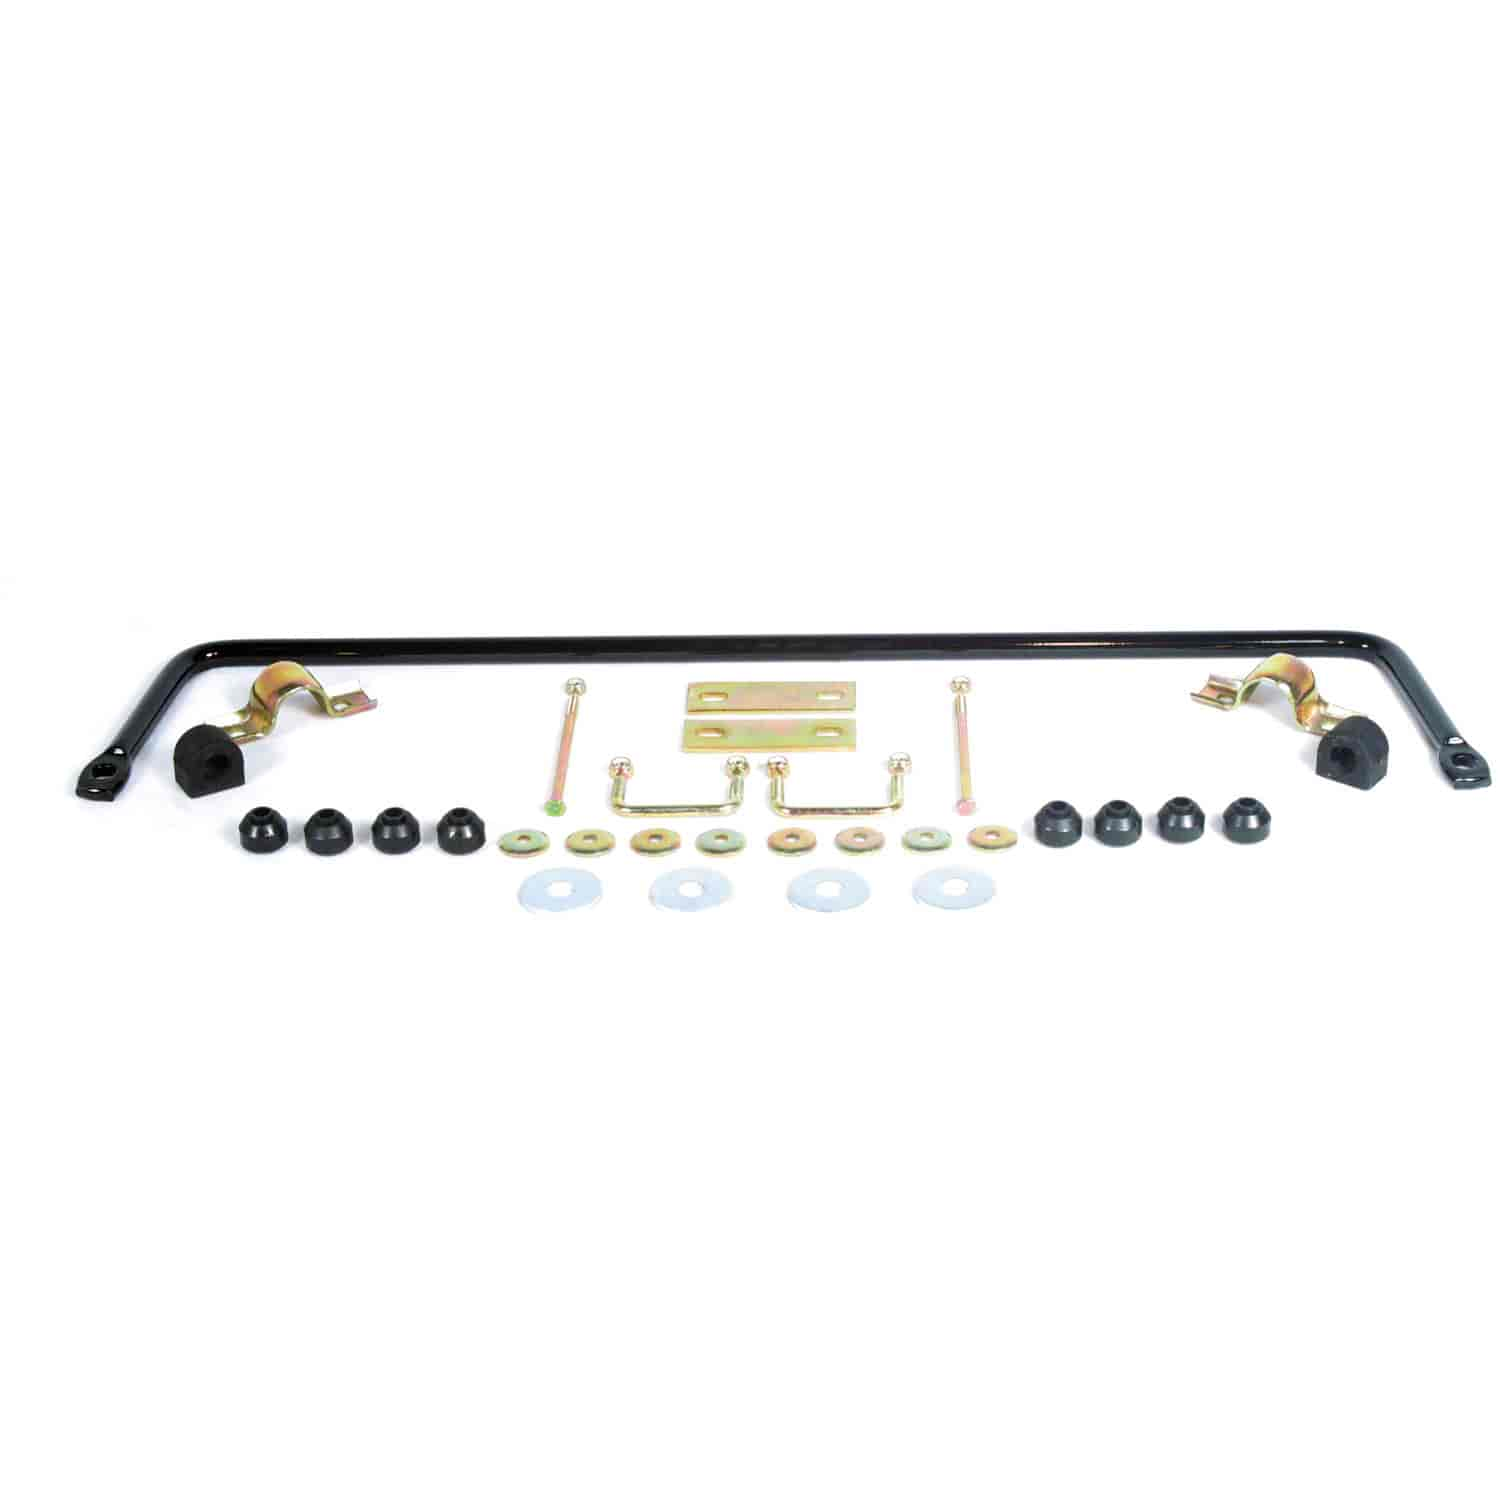 ADDCO 929 - ADDCO European Car Sway Bar Kits